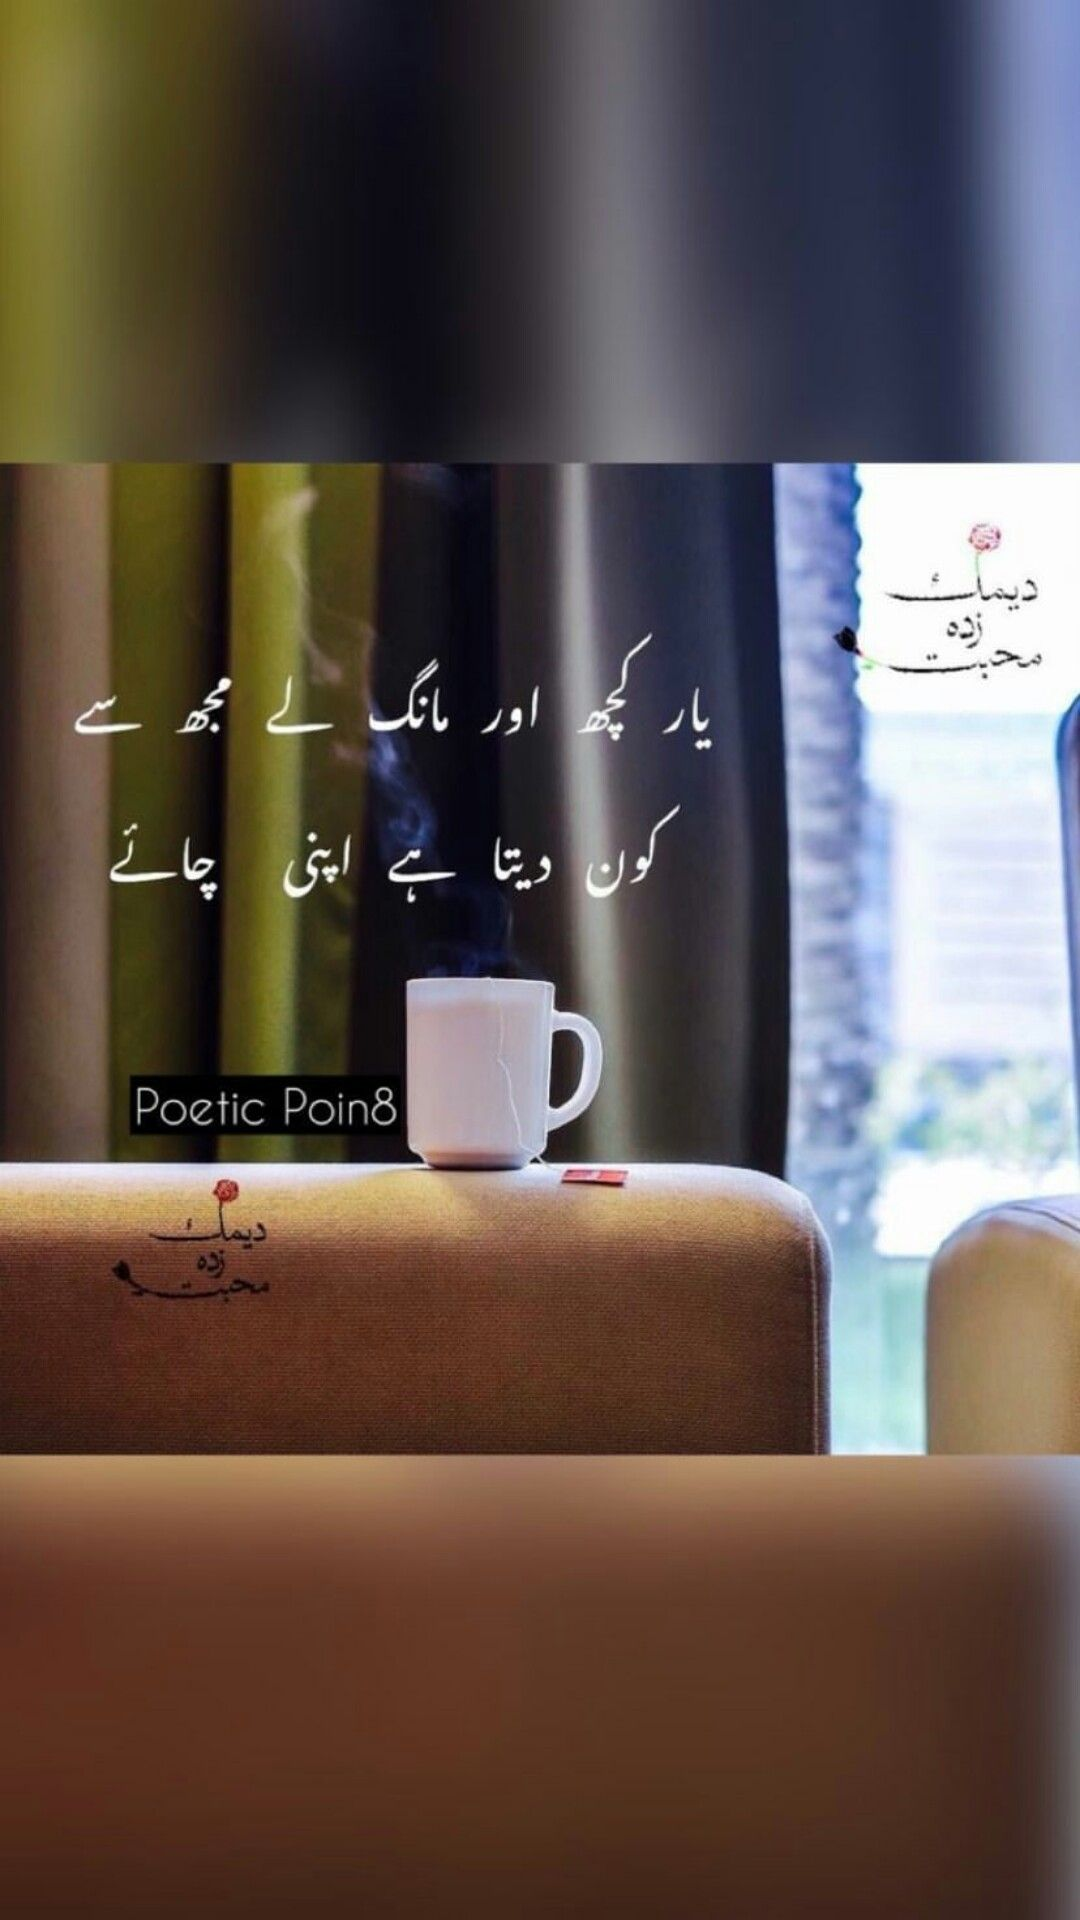 Mai To Bilkul Nhi Deti I Am Tea Positive Pinterest Iqbal